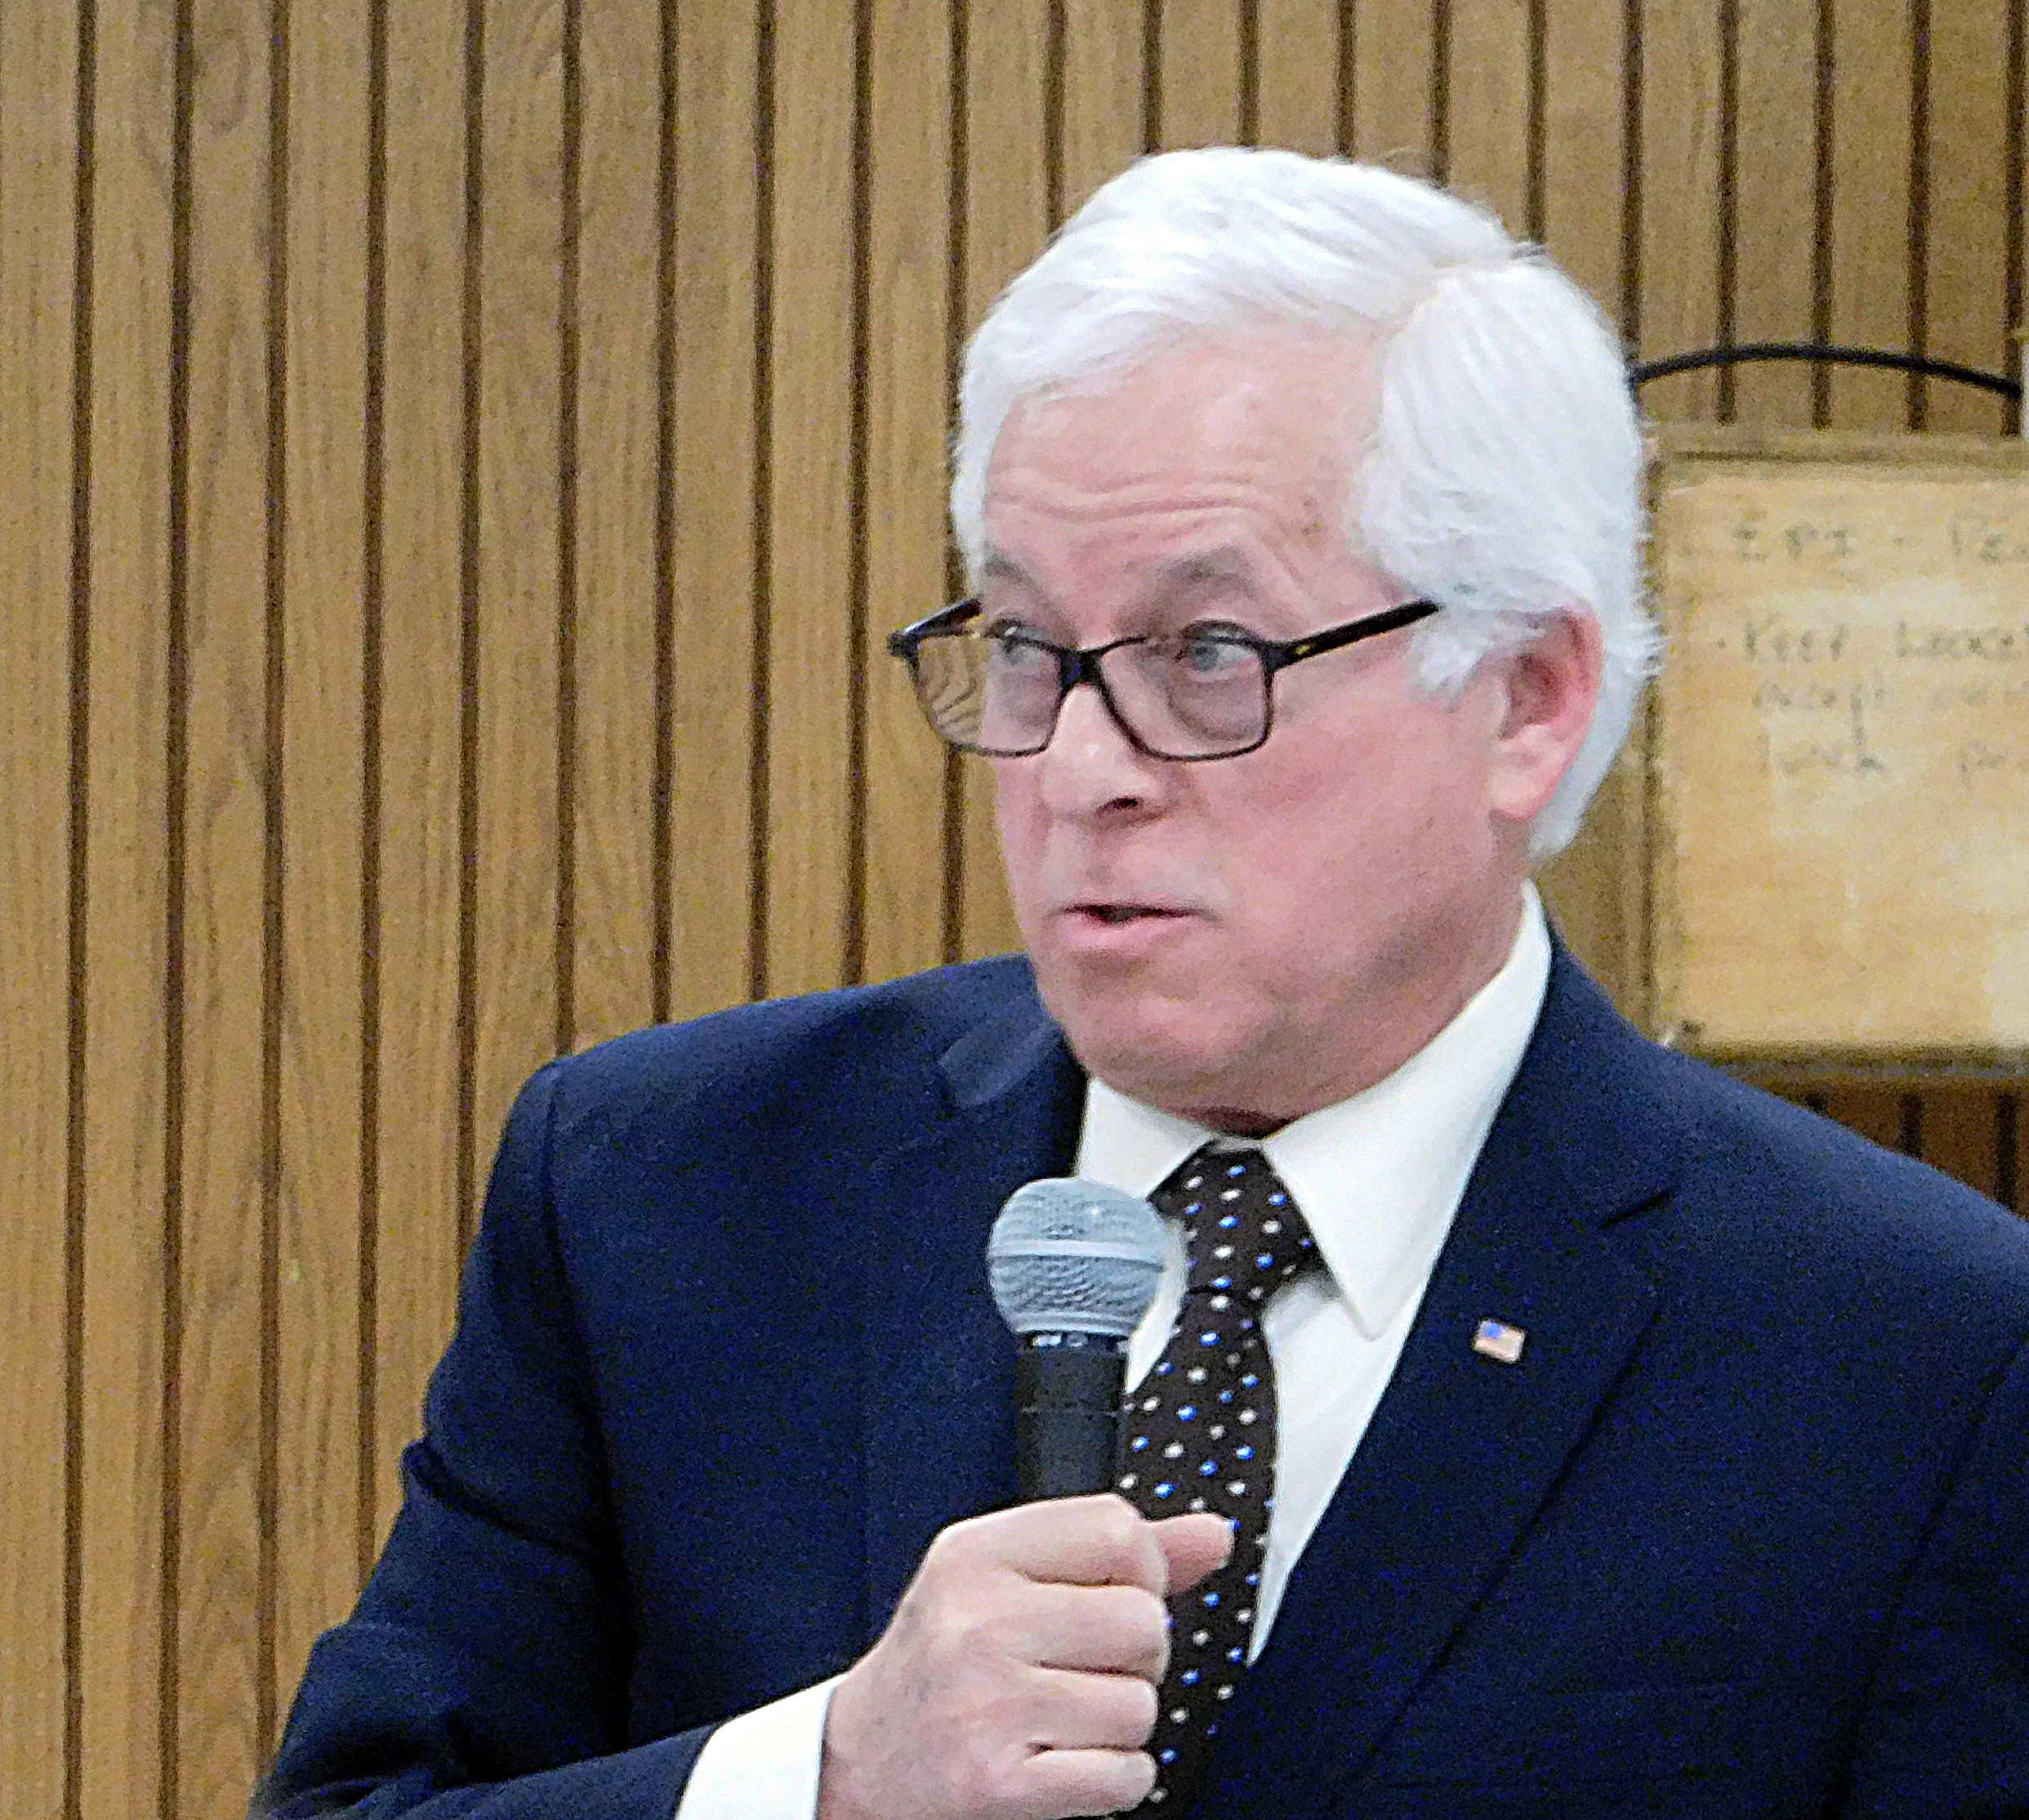 Assemblyman Charles Lavine, a Democratic candidate for Nassau County executive, urged unity in the party at Thursday night's forum for primary candidates.